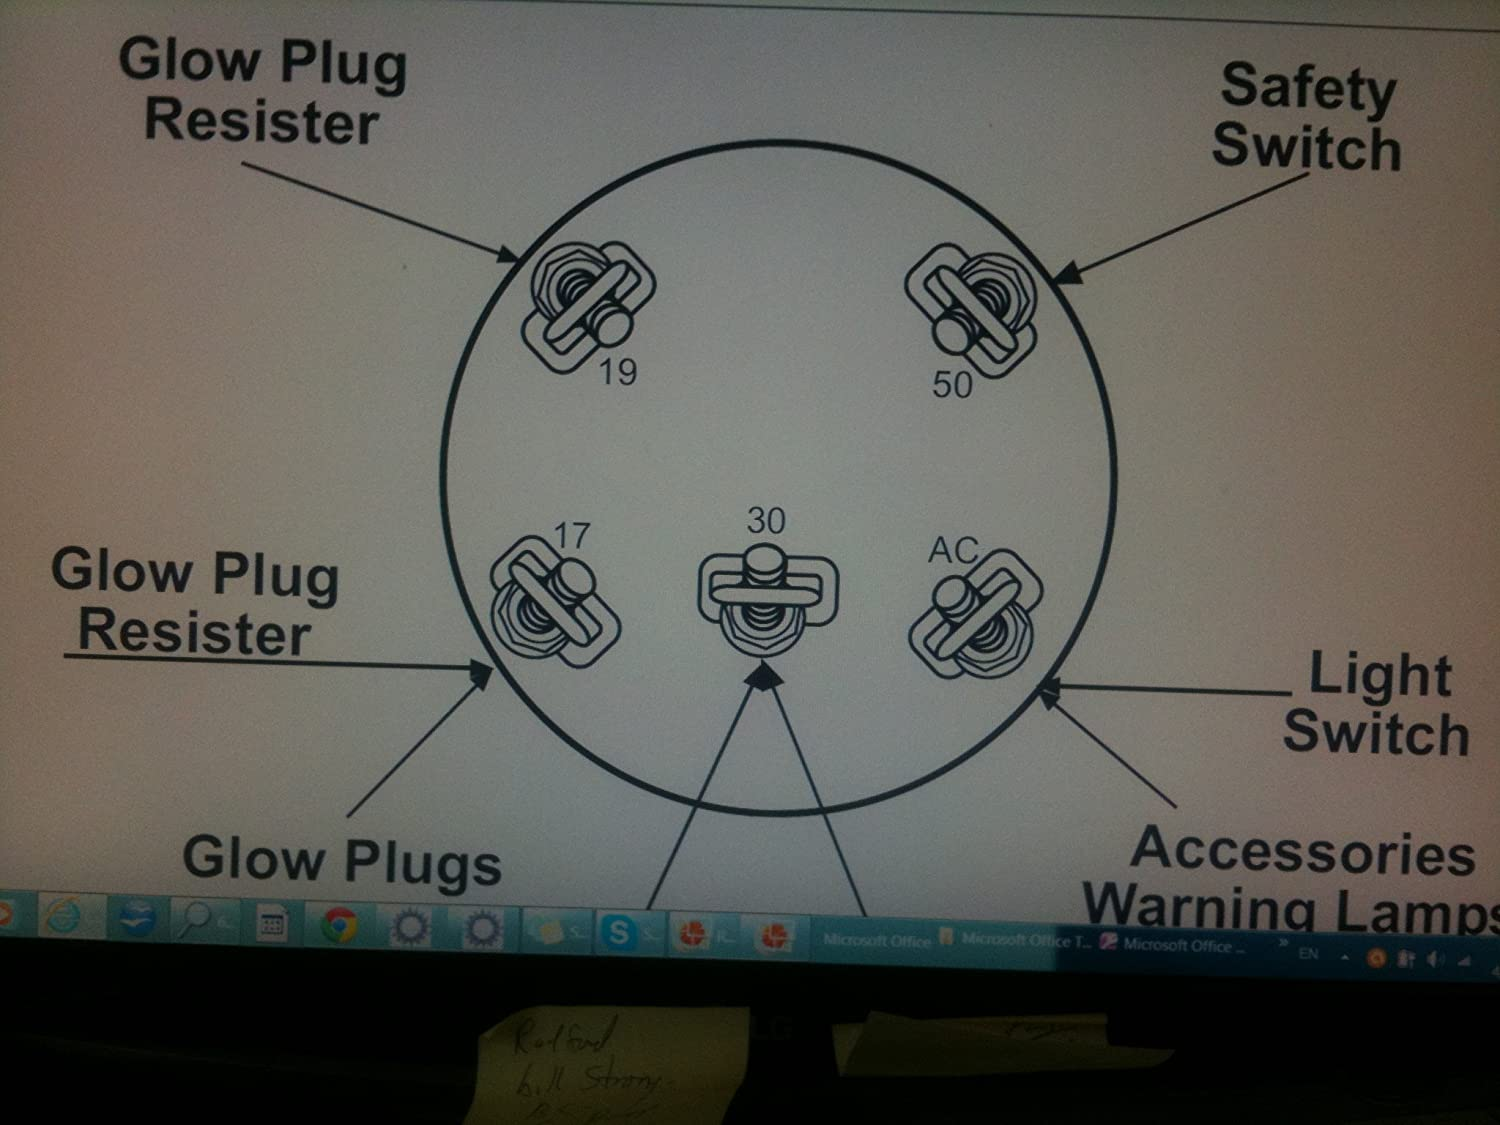 Wiring Diagram For Sba385200331 Libraries Ford 1910 Tractor Ignition Amazon Com Switch S 66902 1000 1100 1110 1200amazon